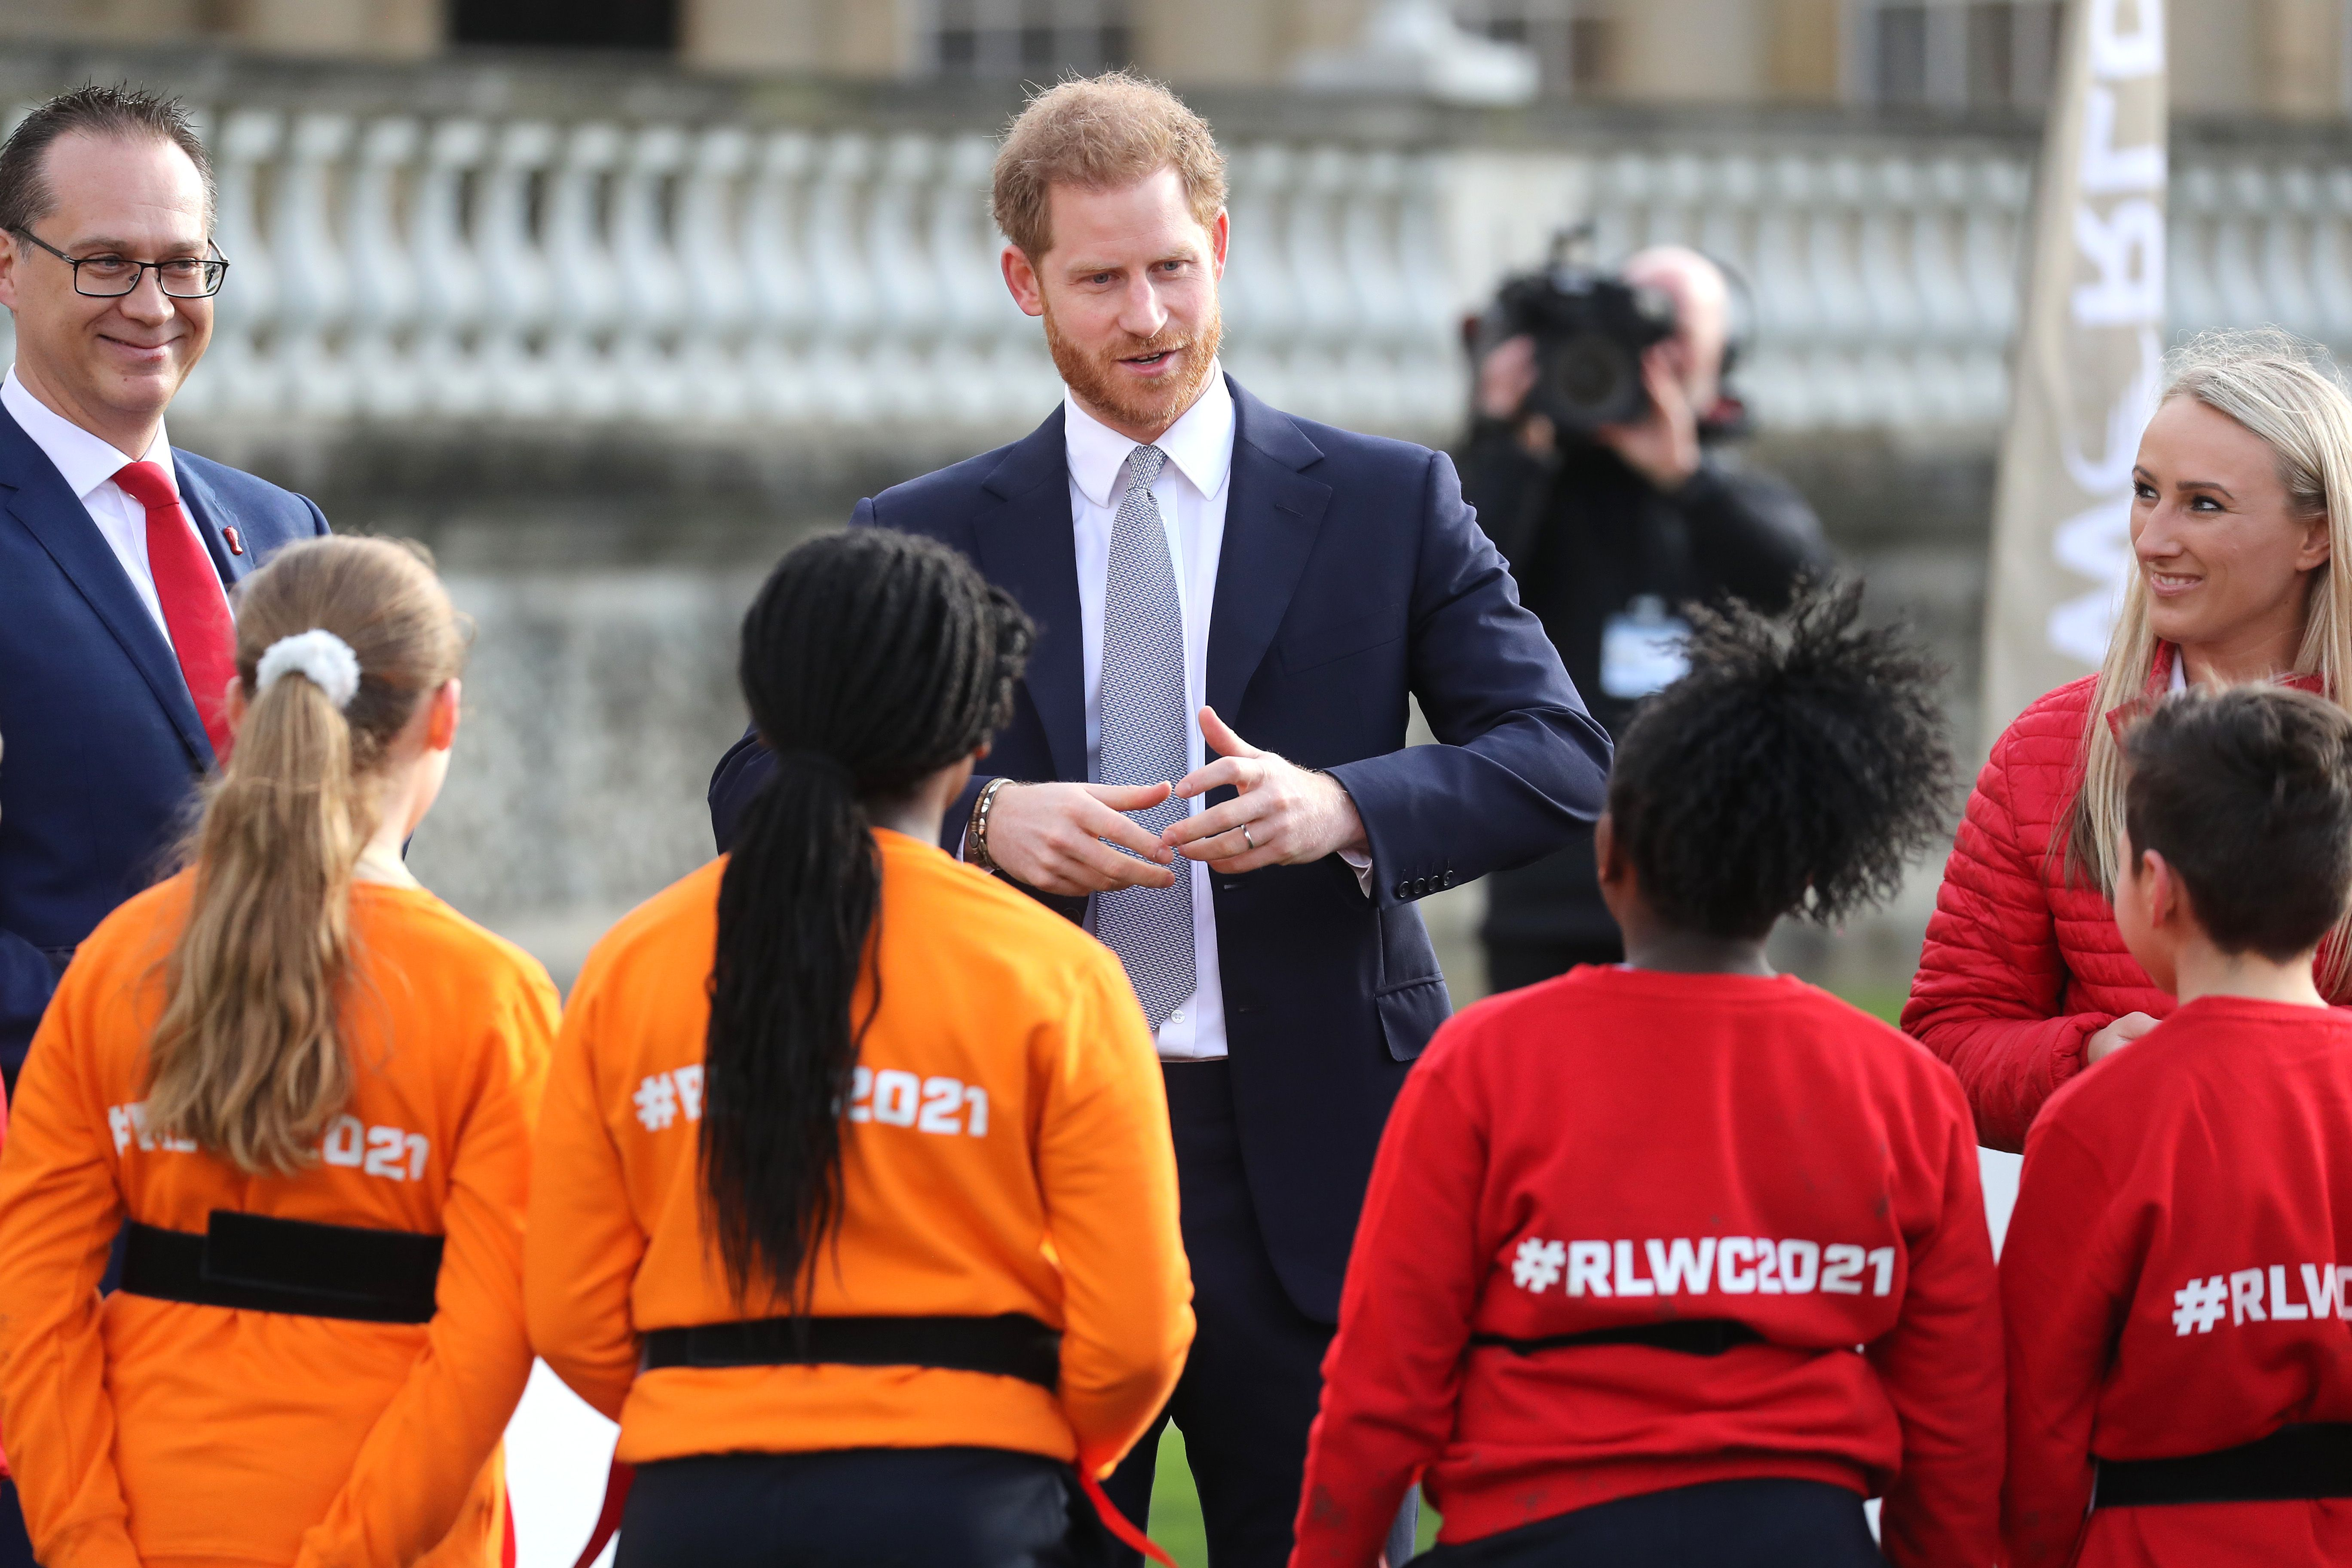 Prince Harry Steps Out for the First Time Since Announcing Royal Resignation